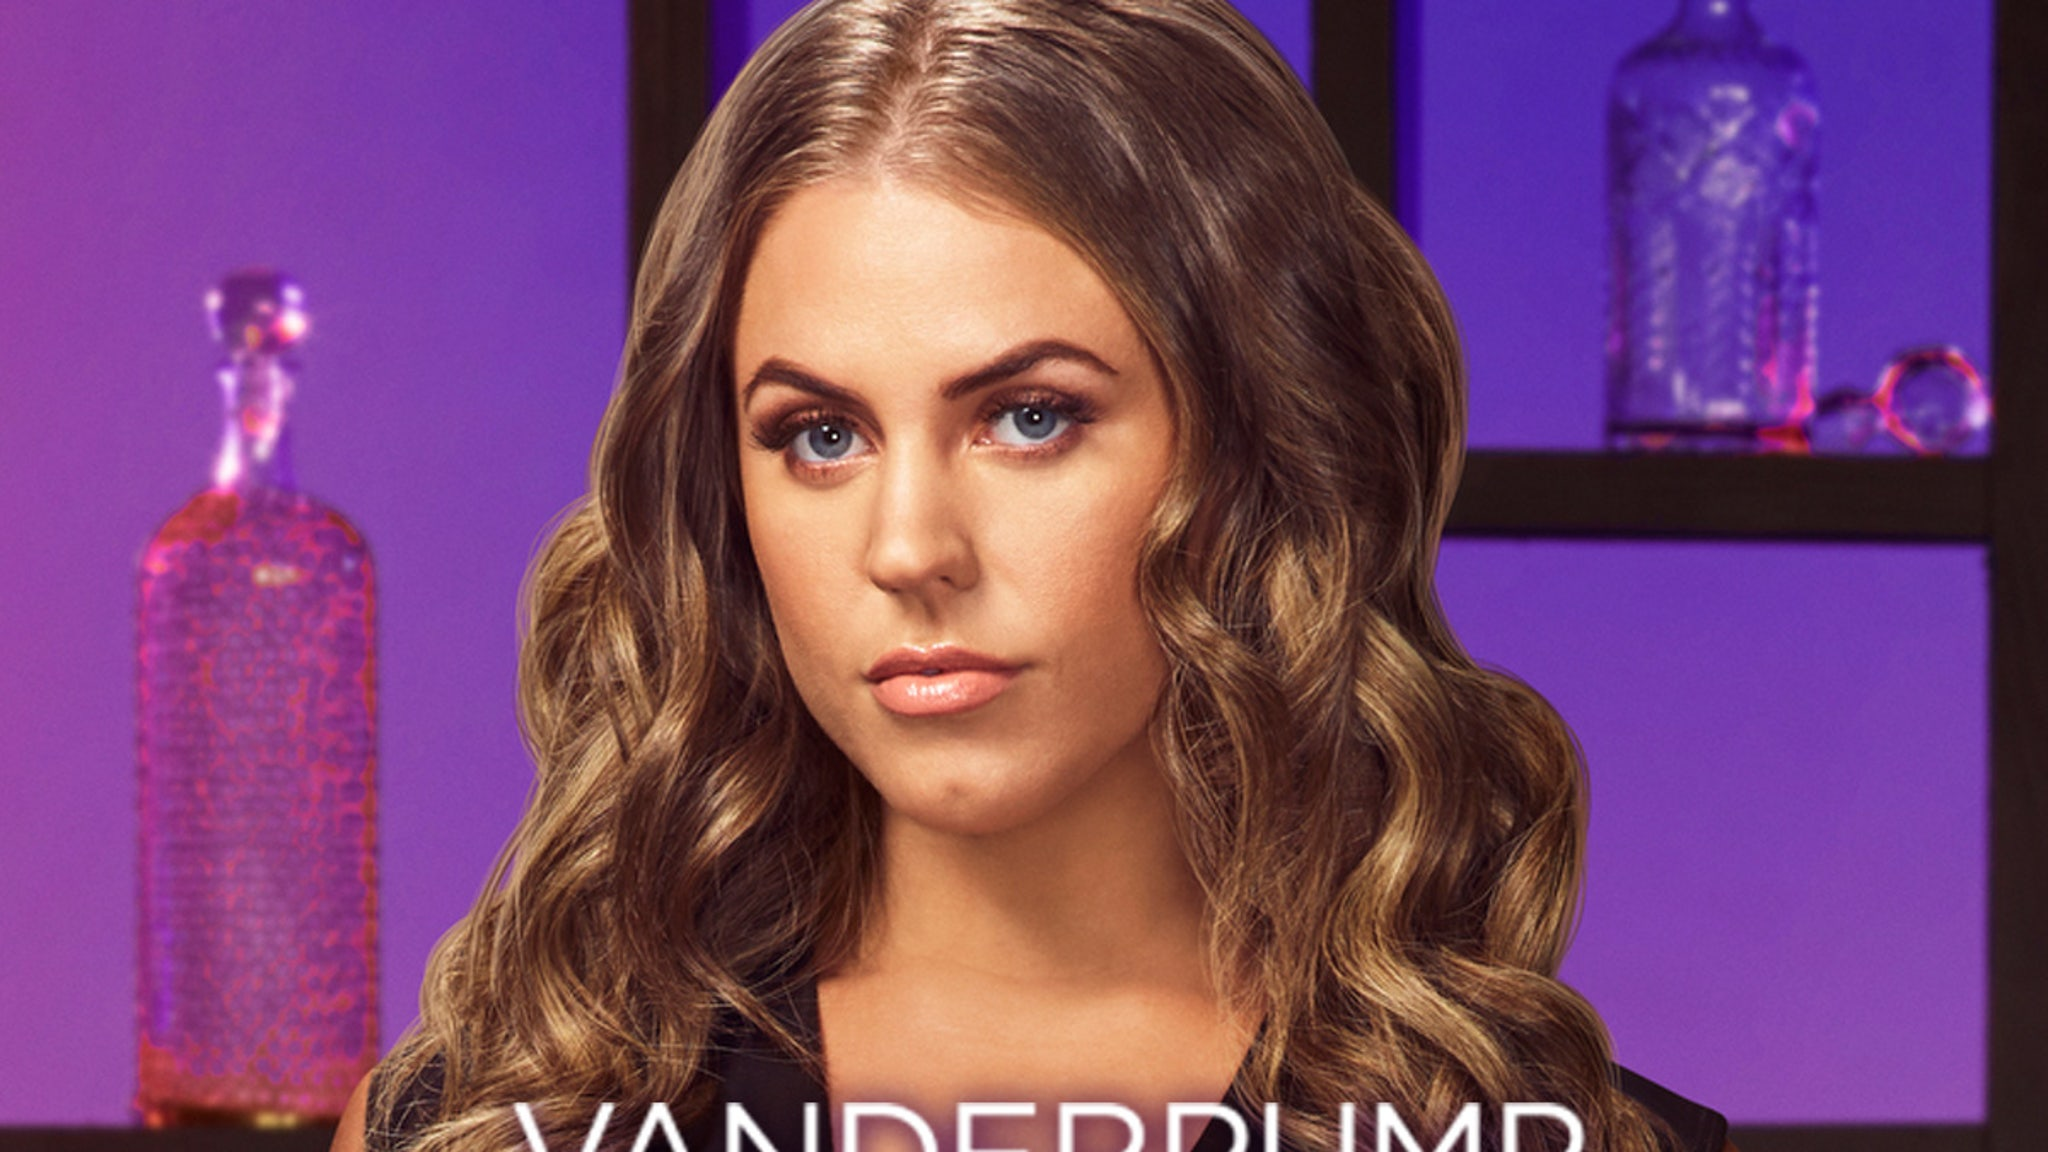 Vanderpump Rules Cast Wants Danica Dow Gone After Tro Drama